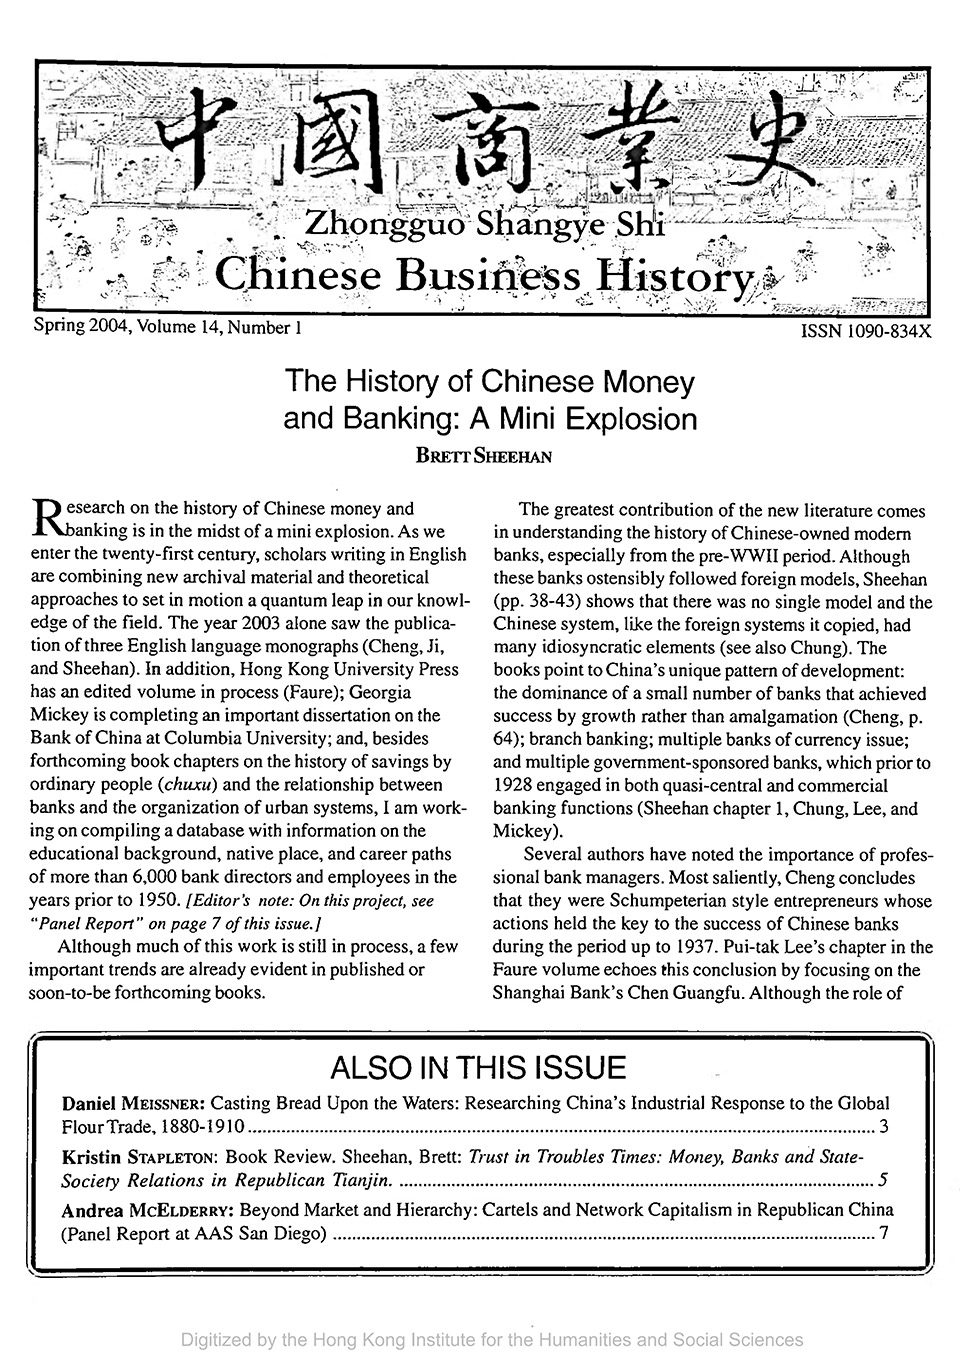 Cover of Chinese Business History Journal Volume 14, Number 1